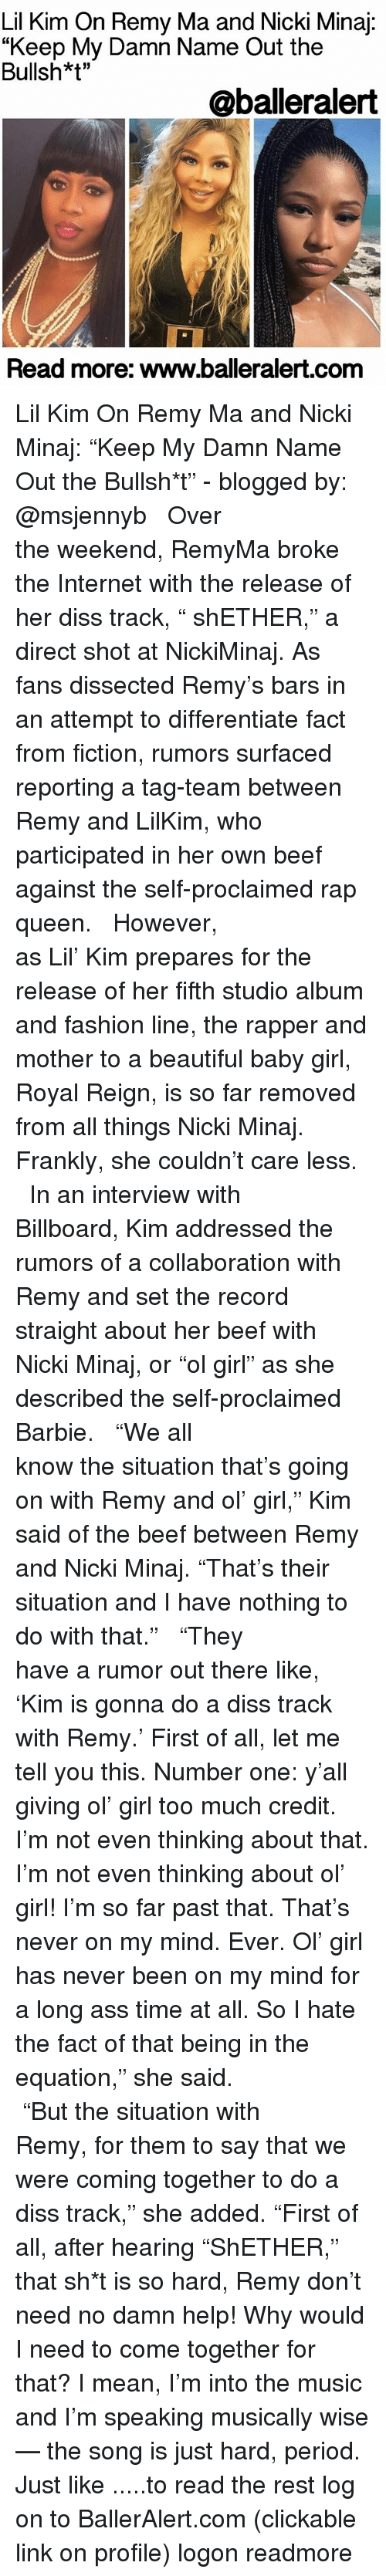 "Billboard, Diss, and Lil Kim: Lil Kim On Remy Ma and Nicki Minaj  ""Keep My Damn Name Out the  Bullsh*t""  @balleralert  Read more: www.balleralert.com Lil Kim On Remy Ma and Nicki Minaj: ""Keep My Damn Name Out the Bullsh*t"" - blogged by: @msjennyb ⠀⠀⠀⠀⠀⠀⠀⠀⠀ ⠀⠀⠀⠀⠀⠀⠀⠀⠀ Over the weekend, RemyMa broke the Internet with the release of her diss track, "" shETHER,"" a direct shot at NickiMinaj. As fans dissected Remy's bars in an attempt to differentiate fact from fiction, rumors surfaced reporting a tag-team between Remy and LilKim, who participated in her own beef against the self-proclaimed rap queen. ⠀⠀⠀⠀⠀⠀⠀⠀⠀ ⠀⠀⠀⠀⠀⠀⠀⠀⠀ However, as Lil' Kim prepares for the release of her fifth studio album and fashion line, the rapper and mother to a beautiful baby girl, Royal Reign, is so far removed from all things Nicki Minaj. Frankly, she couldn't care less. ⠀⠀⠀⠀⠀⠀⠀⠀⠀ ⠀⠀⠀⠀⠀⠀⠀⠀⠀ In an interview with Billboard, Kim addressed the rumors of a collaboration with Remy and set the record straight about her beef with Nicki Minaj, or ""ol girl"" as she described the self-proclaimed Barbie. ⠀⠀⠀⠀⠀⠀⠀⠀⠀ ⠀⠀⠀⠀⠀⠀⠀⠀⠀ ""We all know the situation that's going on with Remy and ol' girl,"" Kim said of the beef between Remy and Nicki Minaj. ""That's their situation and I have nothing to do with that."" ⠀⠀⠀⠀⠀⠀⠀⠀⠀ ⠀⠀⠀⠀⠀⠀⠀⠀⠀ ""They have a rumor out there like, 'Kim is gonna do a diss track with Remy.' First of all, let me tell you this. Number one: y'all giving ol' girl too much credit. I'm not even thinking about that. I'm not even thinking about ol' girl! I'm so far past that. That's never on my mind. Ever. Ol' girl has never been on my mind for a long ass time at all. So I hate the fact of that being in the equation,"" she said. ⠀⠀⠀⠀⠀⠀⠀⠀⠀ ⠀⠀⠀⠀⠀⠀⠀⠀⠀ ""But the situation with Remy, for them to say that we were coming together to do a diss track,"" she added. ""First of all, after hearing ""ShETHER,"" that sh*t is so hard, Remy don't need no damn help! Why would I need to come together for that? I mean, I'm into the music and I'm speaking musically wise — the song is just hard, period. Just like .....to read the rest log on to BallerAlert.com (clickable link on profile) logon readmore"